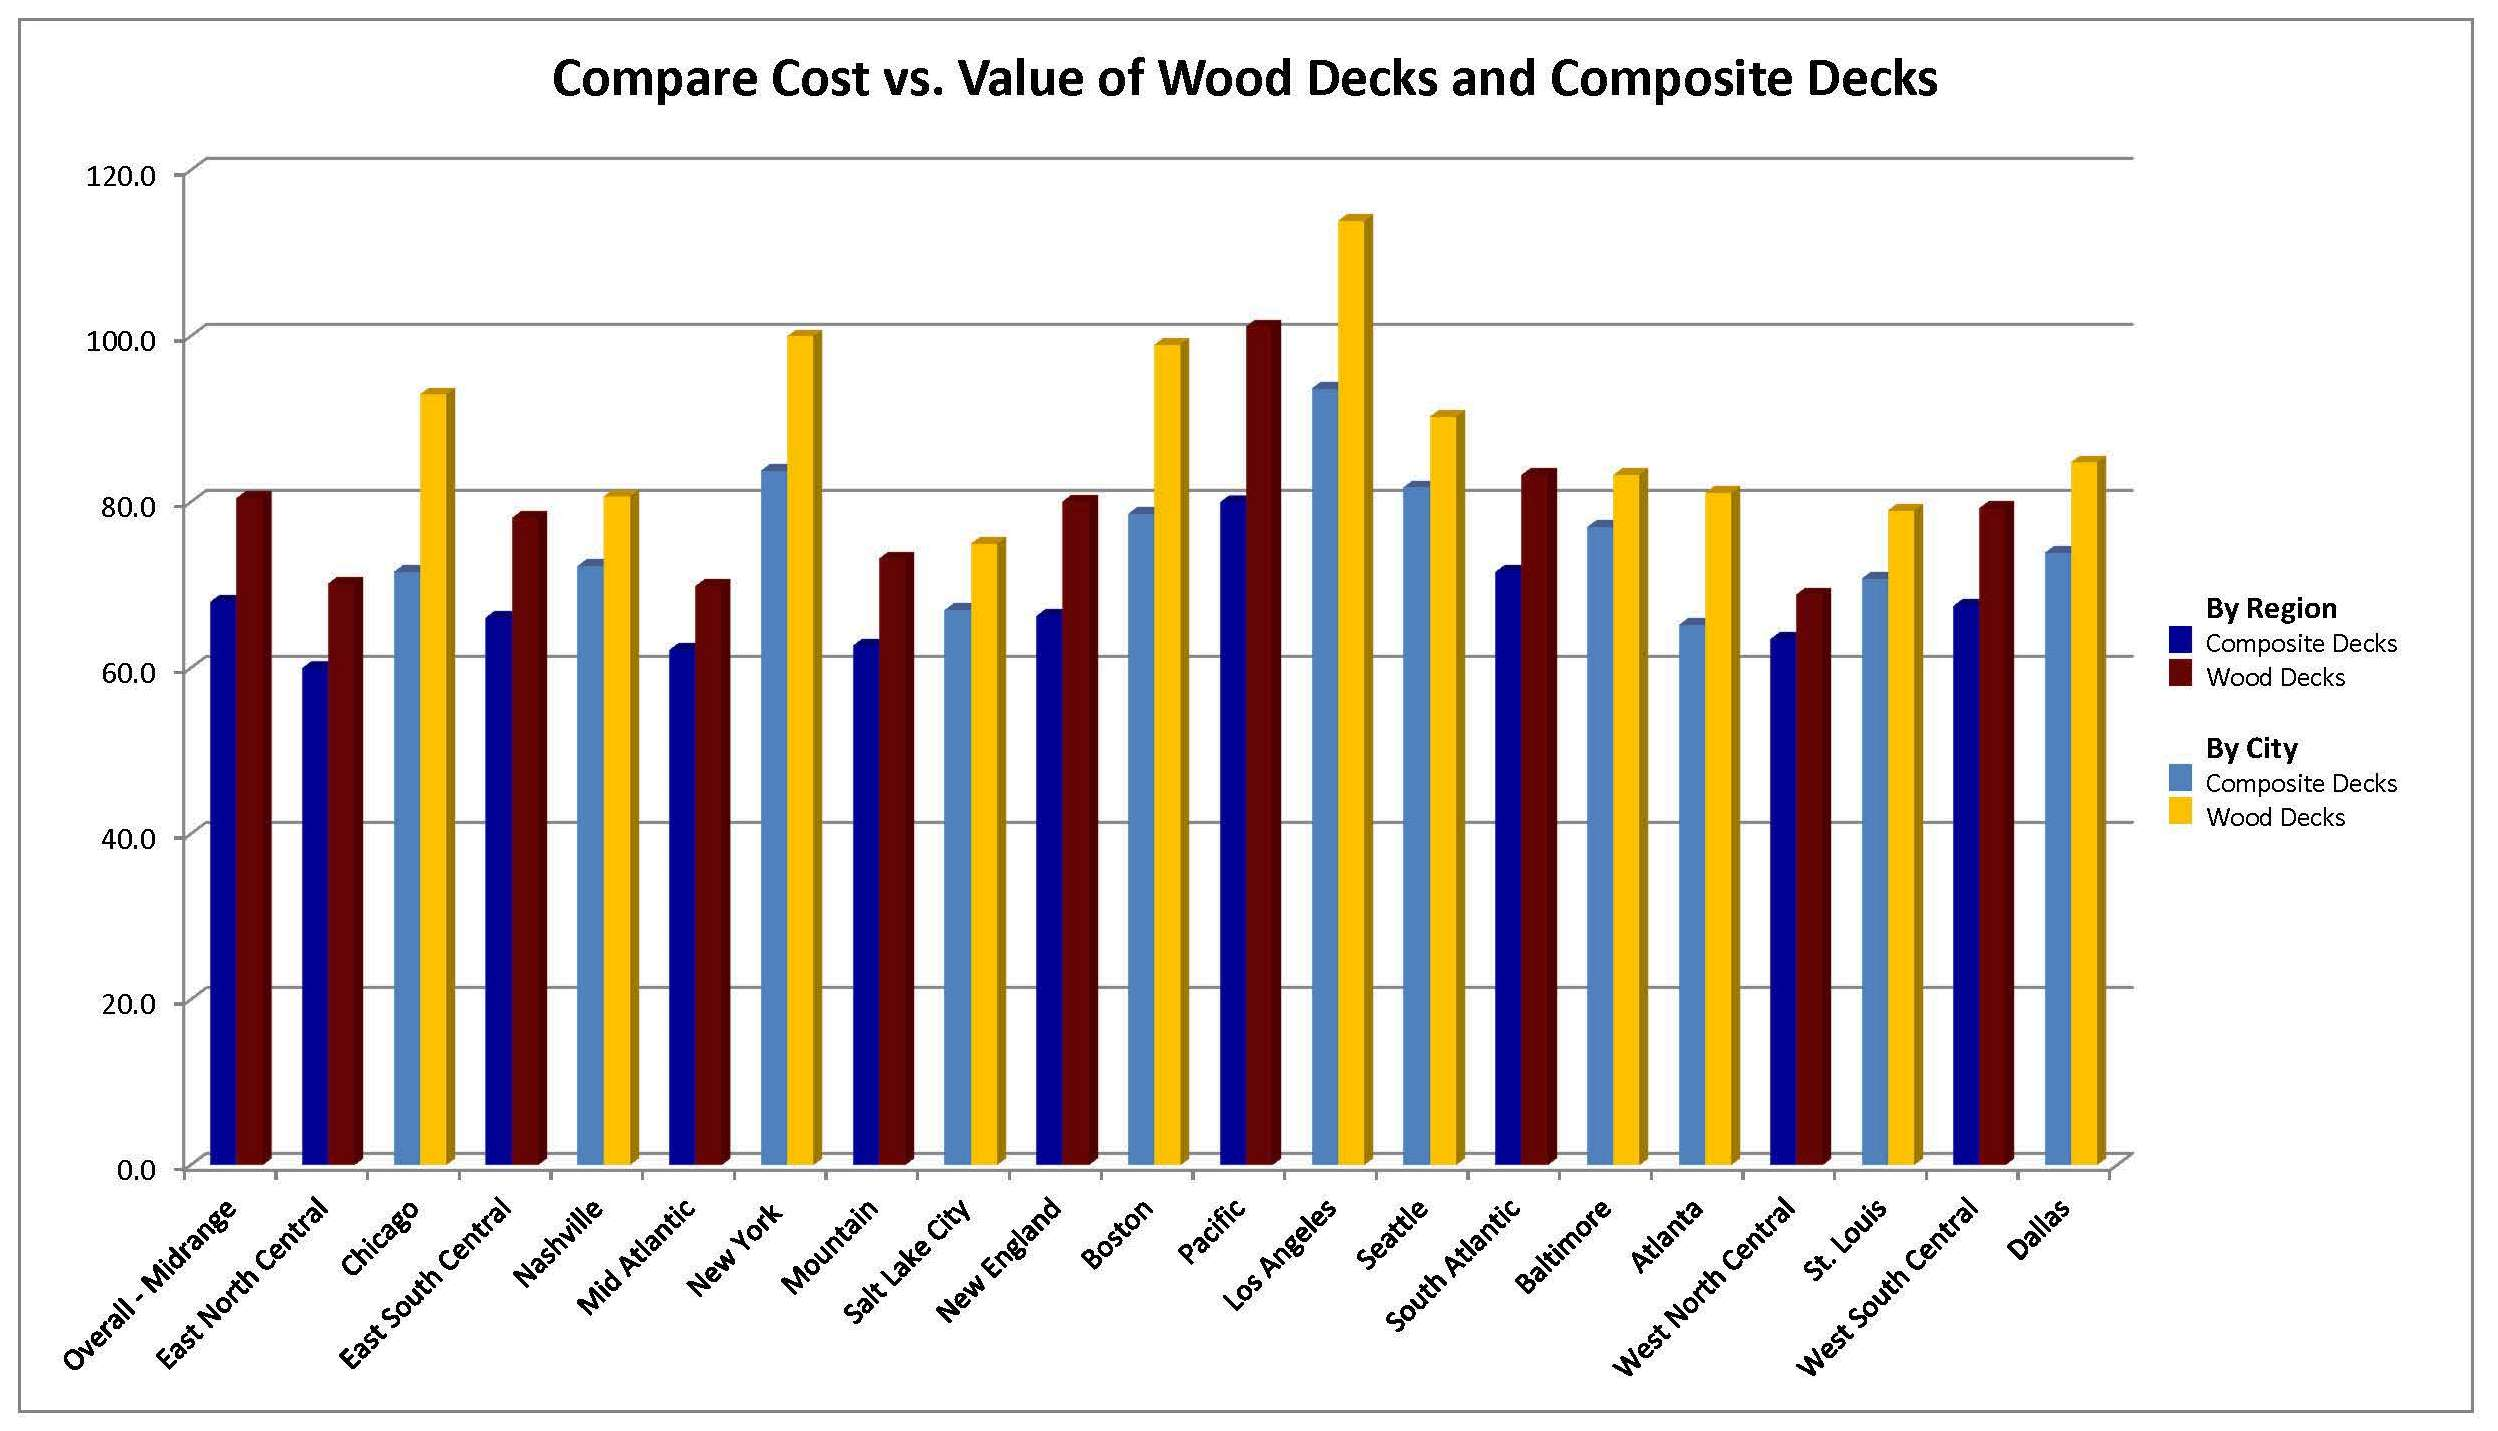 Wood deck value exceeds composite deck value in 2015 cost for Composite decking comparison